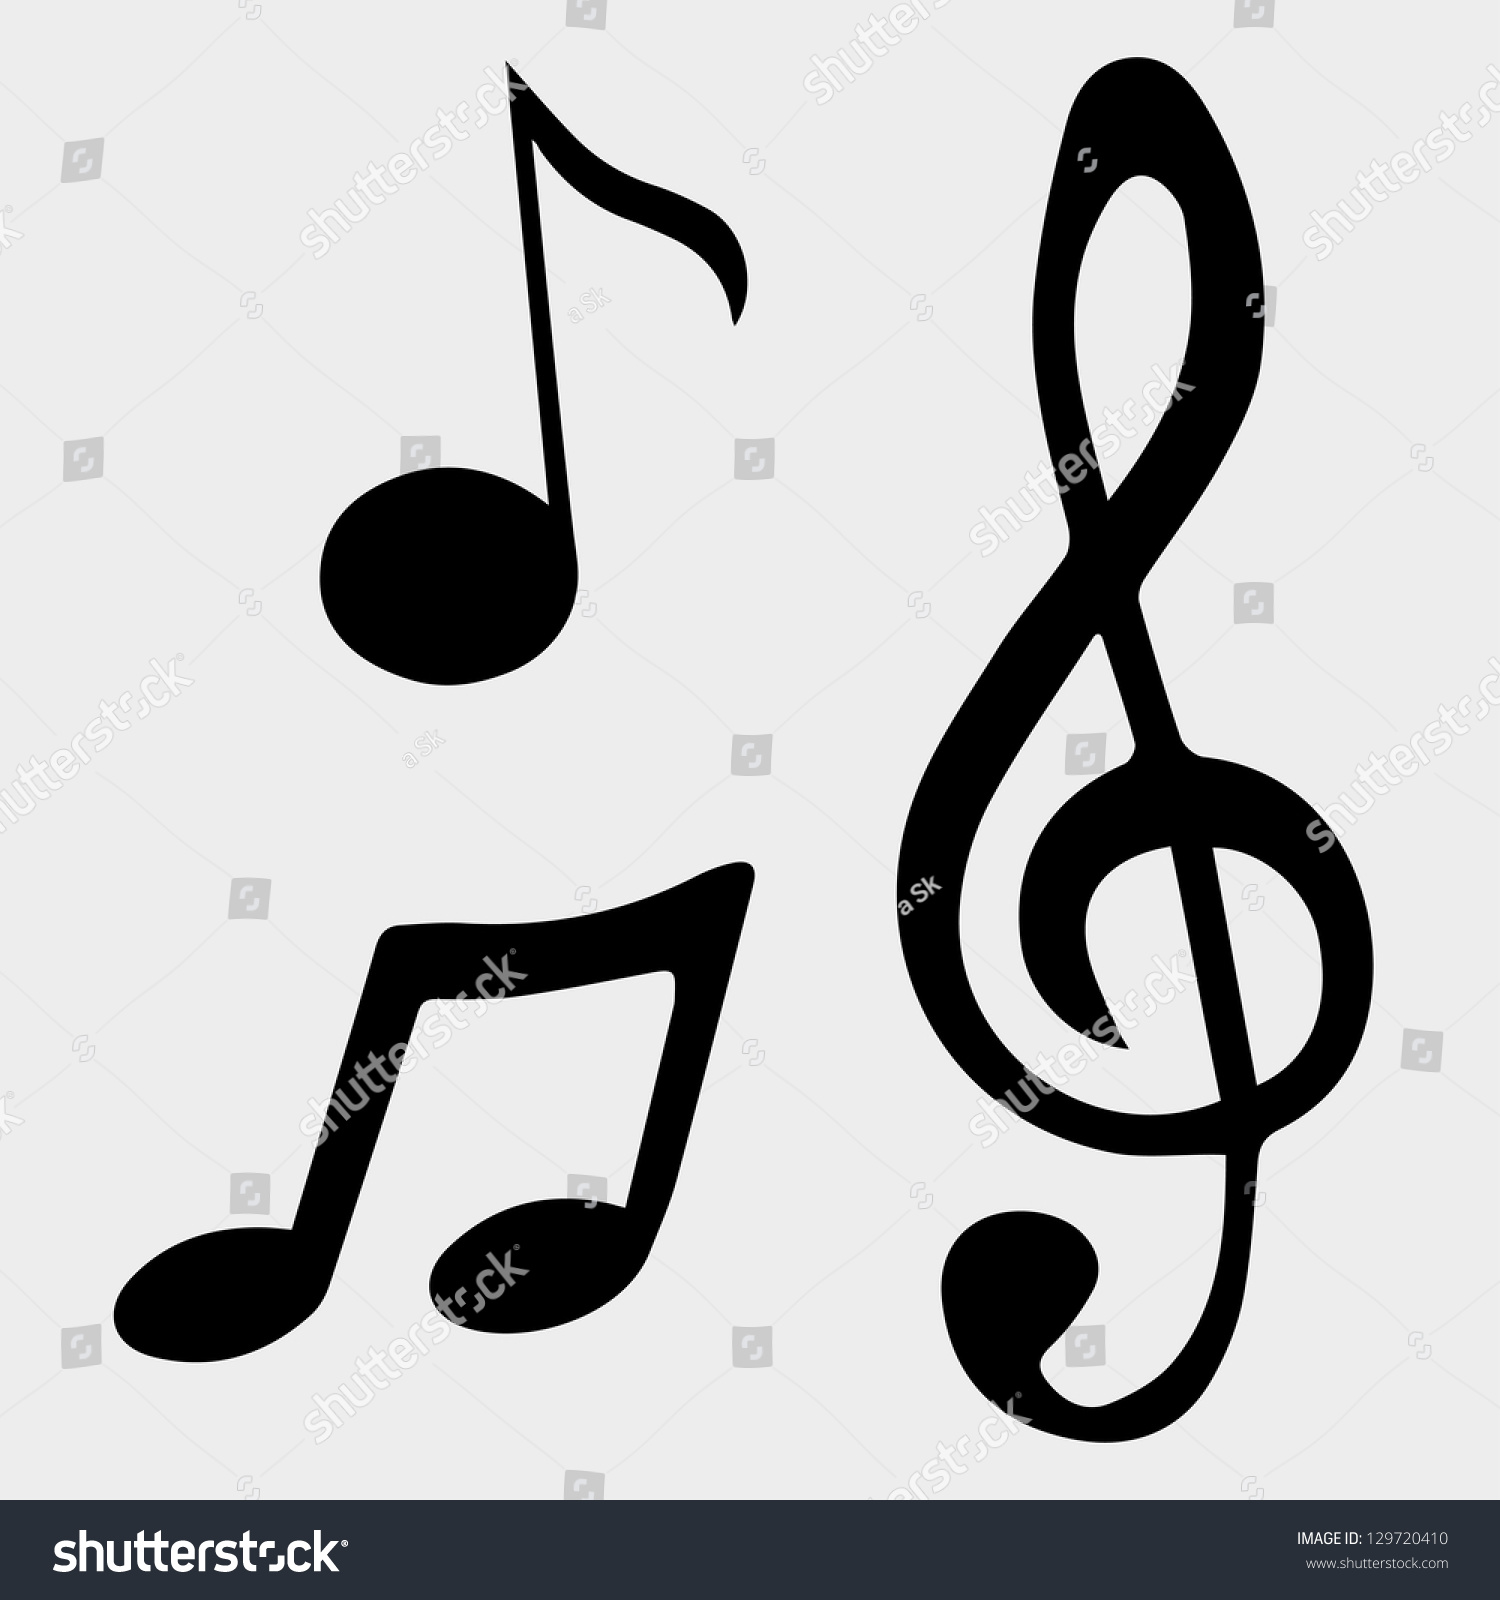 music note symbol pictures gallery meaning of text symbols